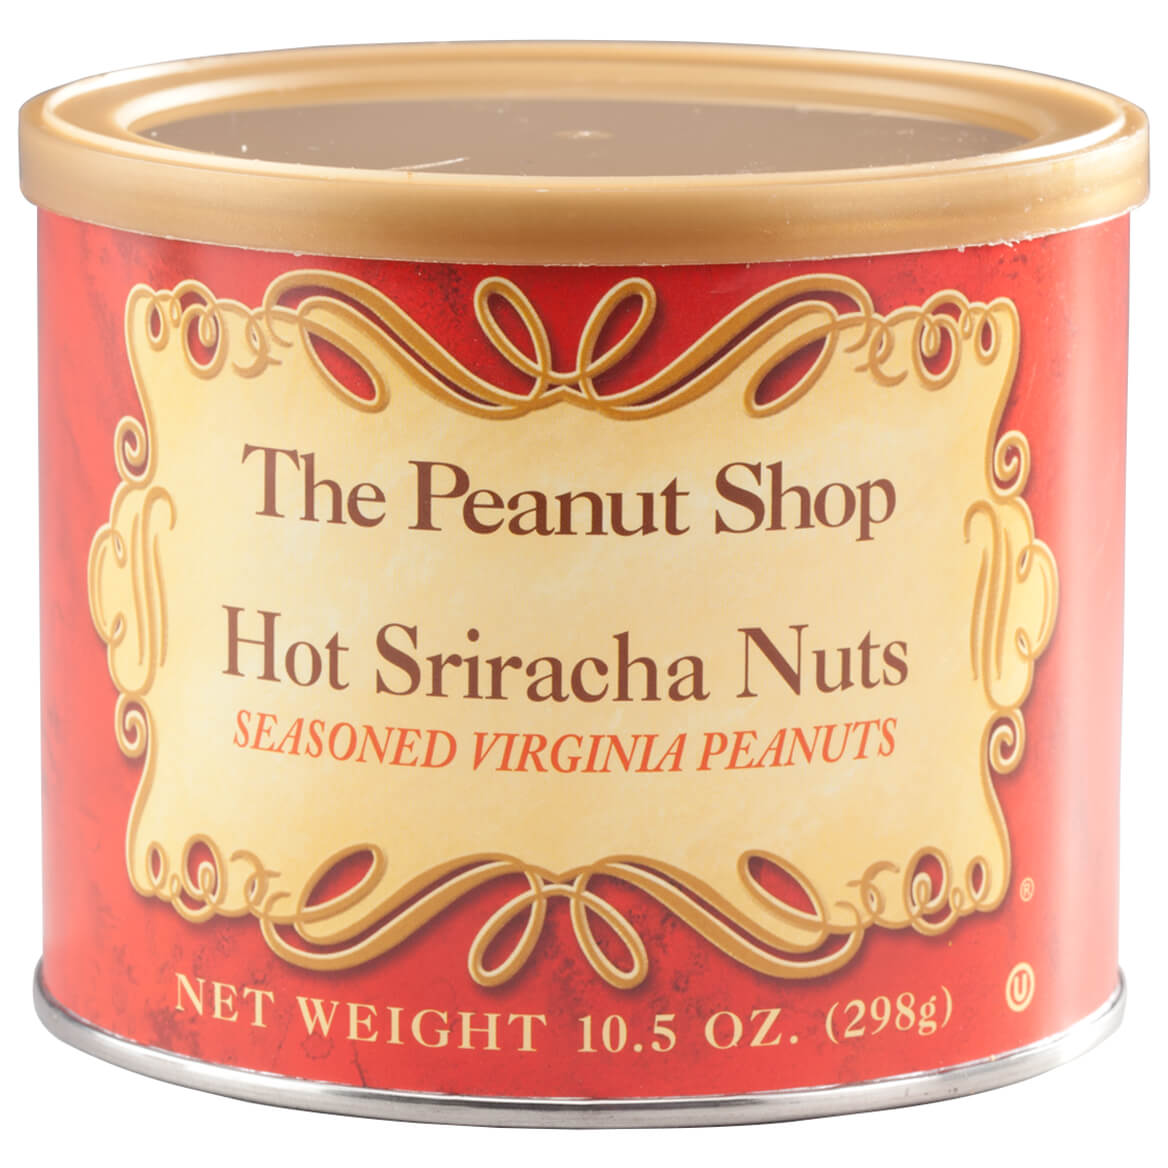 The Peanut Shop® Hot Siracha Peanuts, 10.5oz.